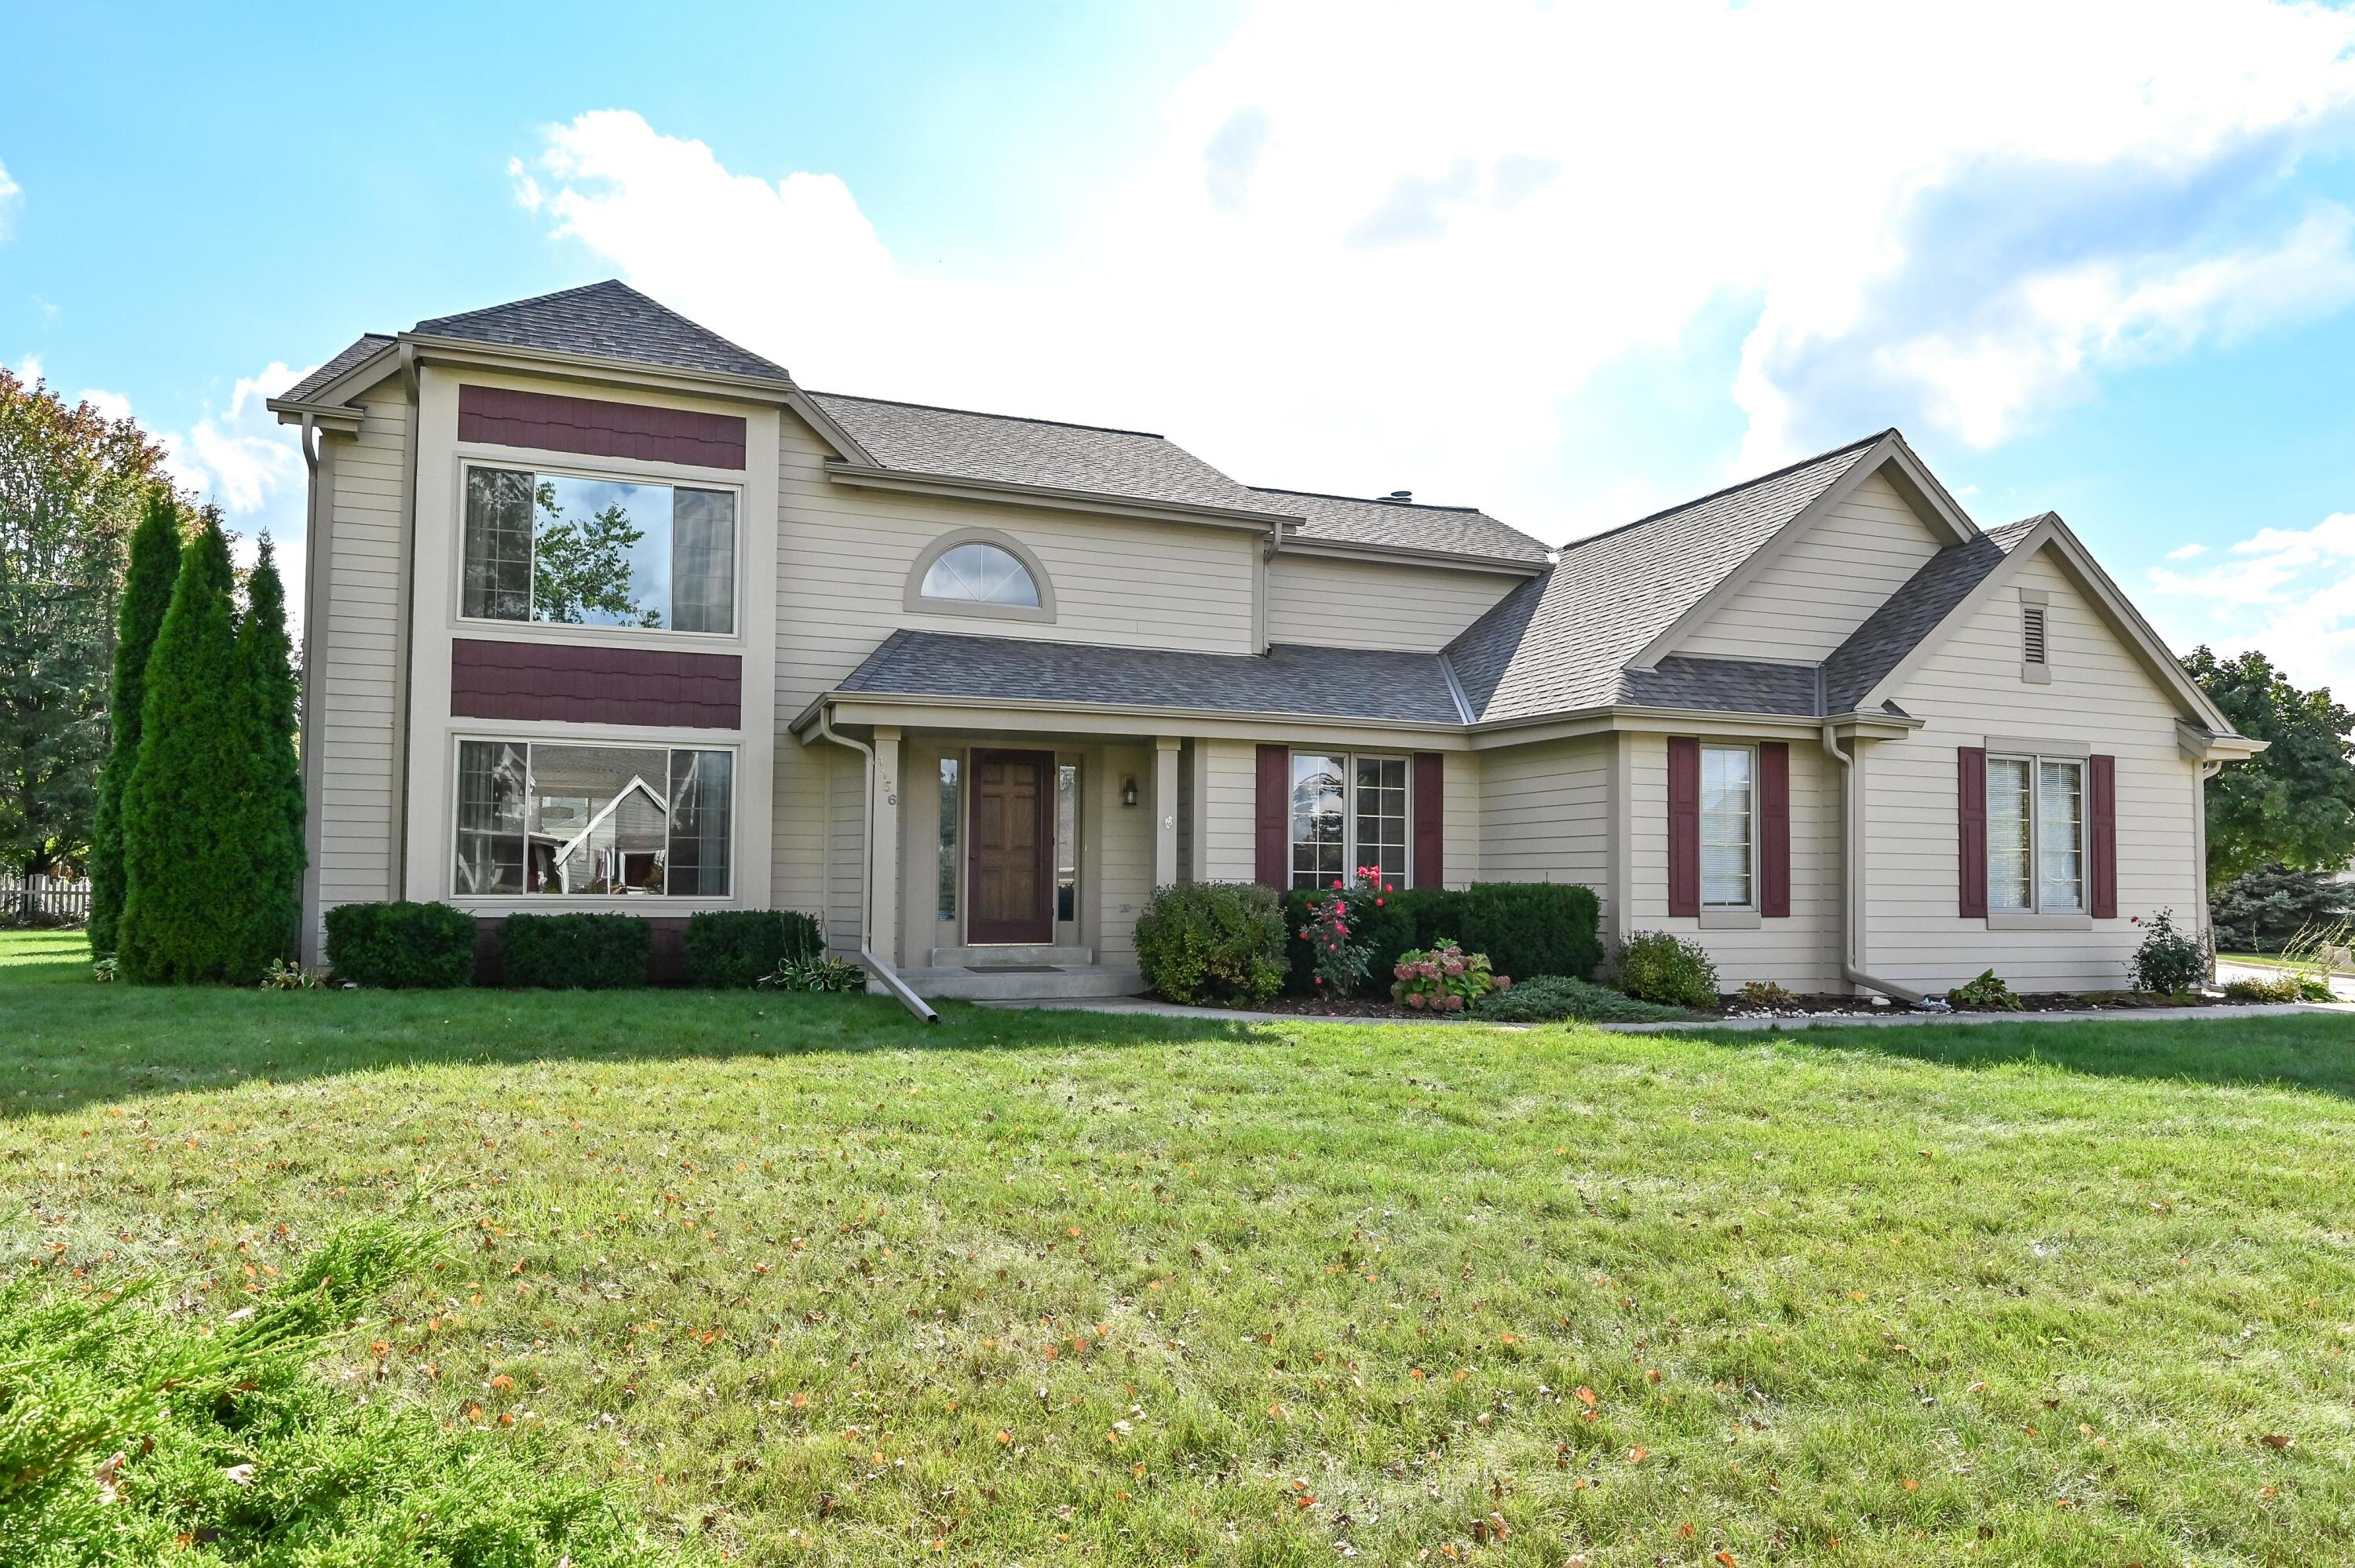 1156 Hillwood Blvd, Pewaukee, Wisconsin 53072, 5 Bedrooms Bedrooms, 12 Rooms Rooms,3 BathroomsBathrooms,Single-Family,For Sale,Hillwood Blvd,1768086